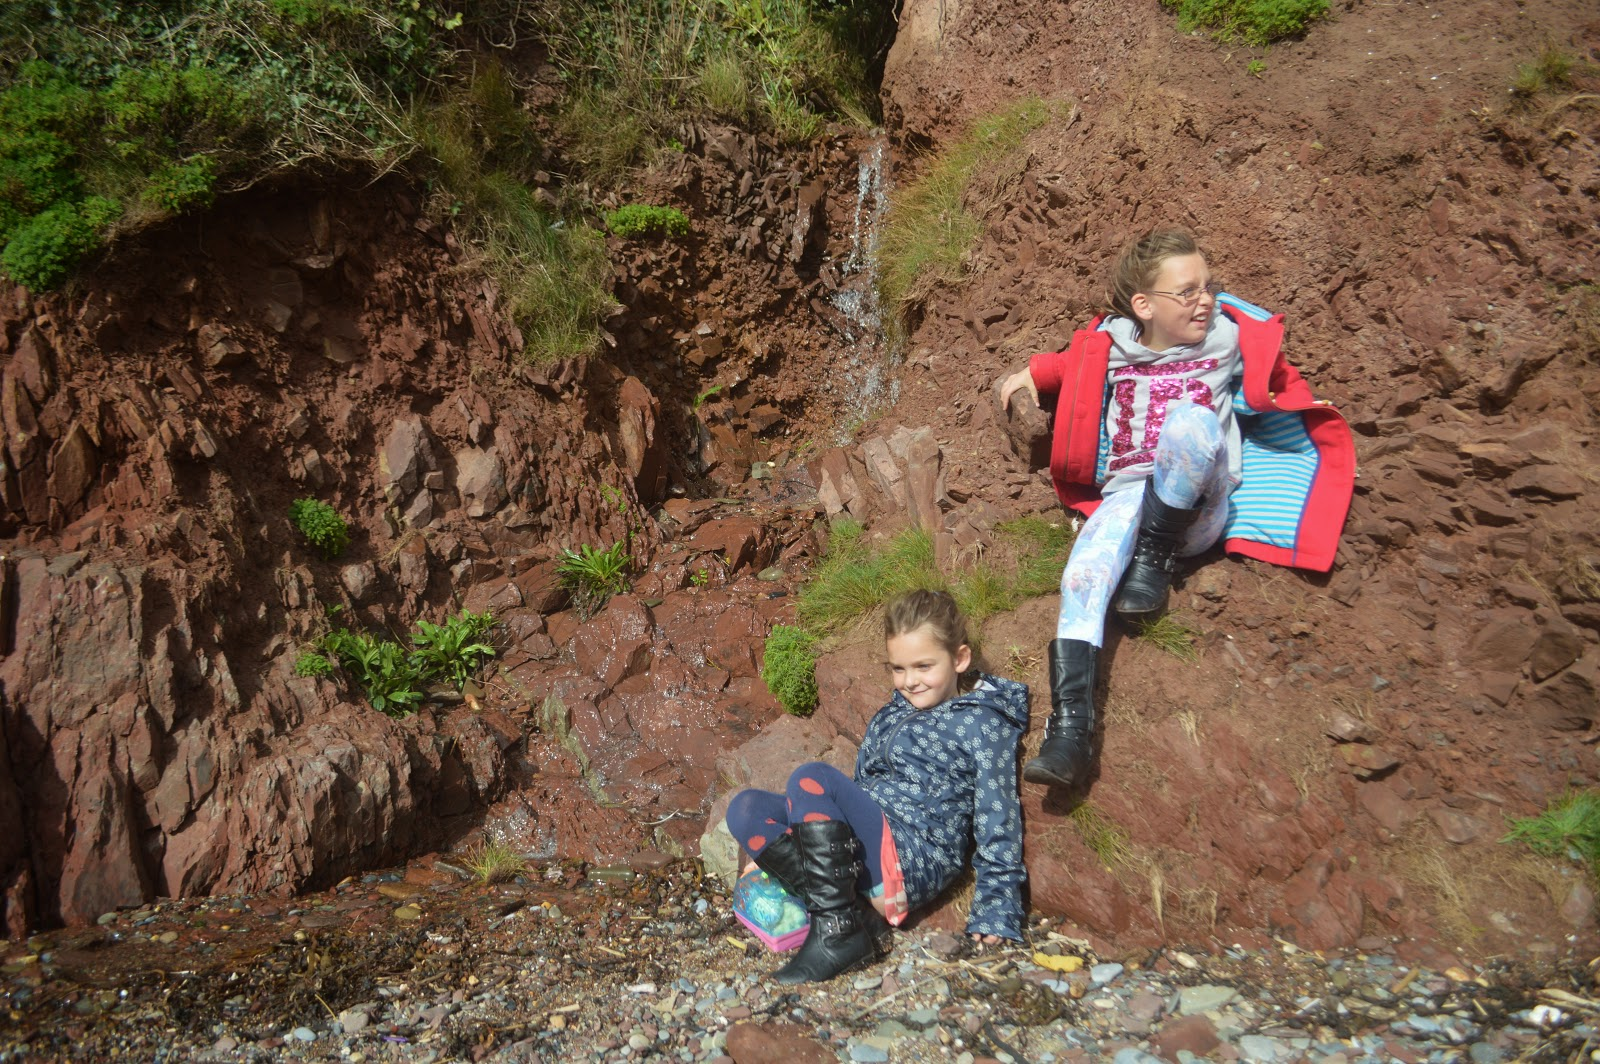 Girls on the Rocks, Manorbier, Pembrokeshire, Wales